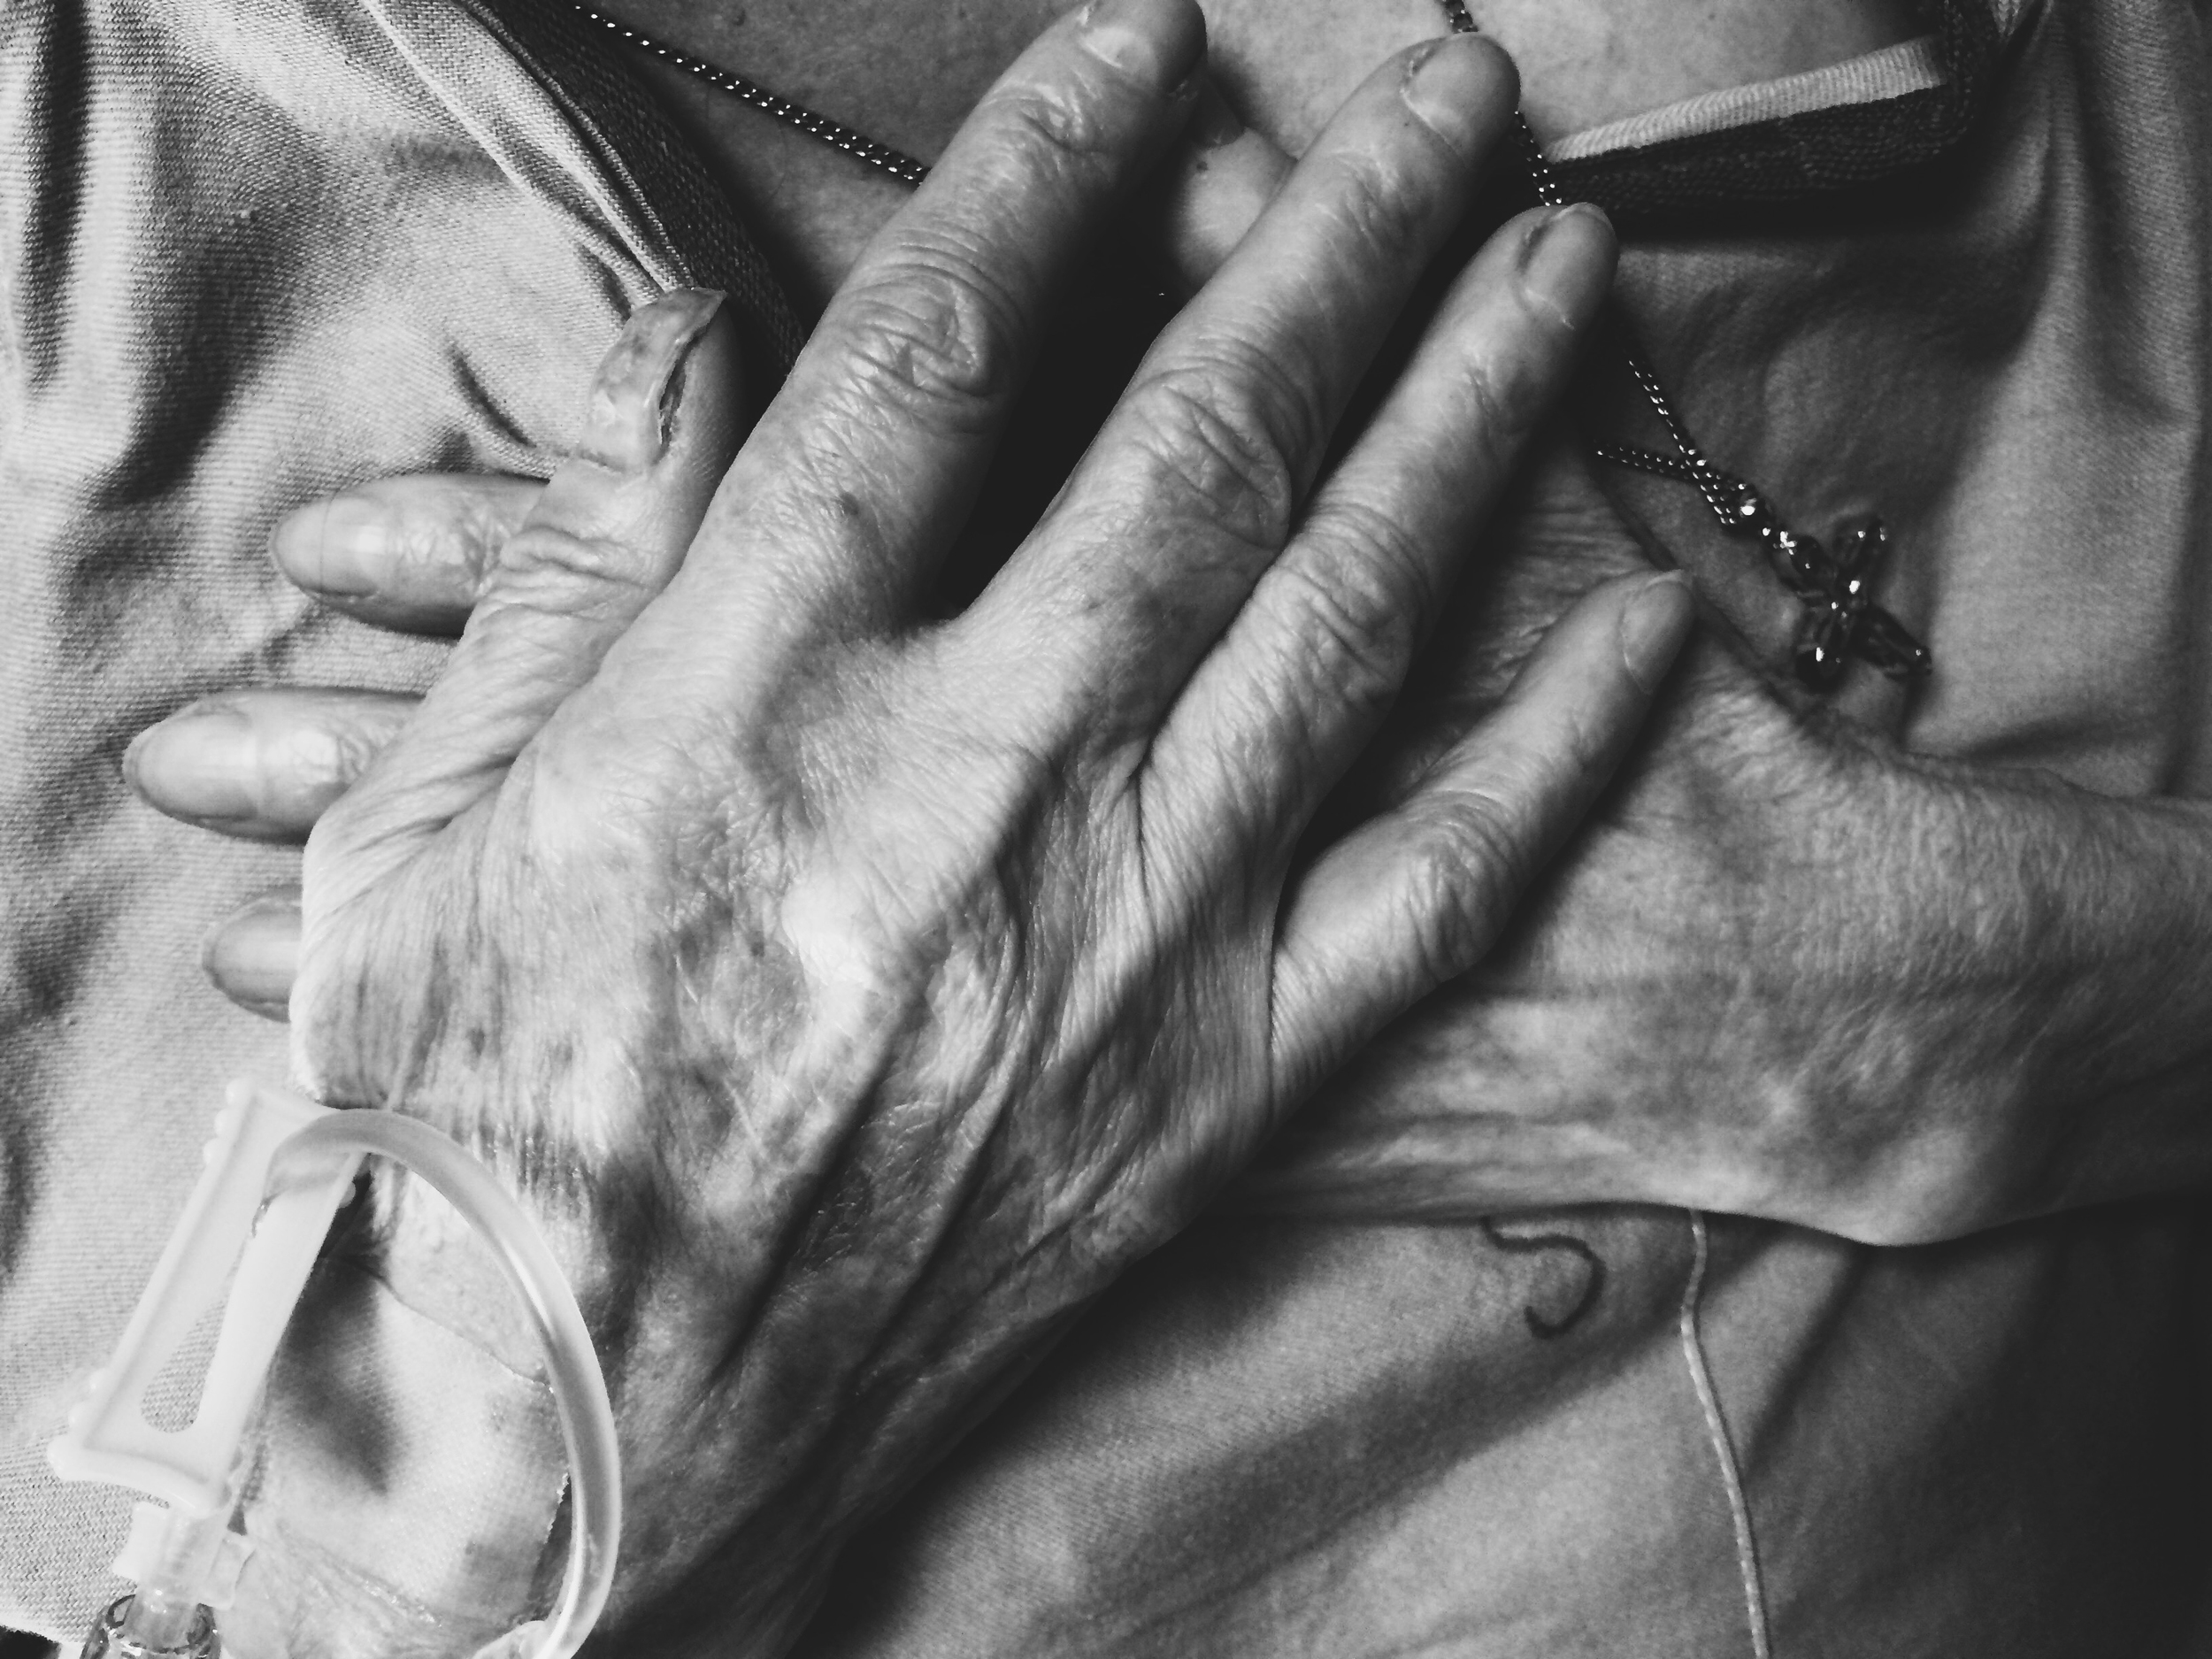 A lot of this day was spent sitting in a hospital, listening to grandma tell stories. And before my eyelids close from exhaustion, I still want to share. Because my grandma places her hands on her heart the same way I do when we really pray. Because IVs have always made me scared. Because she is forever trying to make sure I am getting enough protein. And because it's important to take images simply because all of this matters.